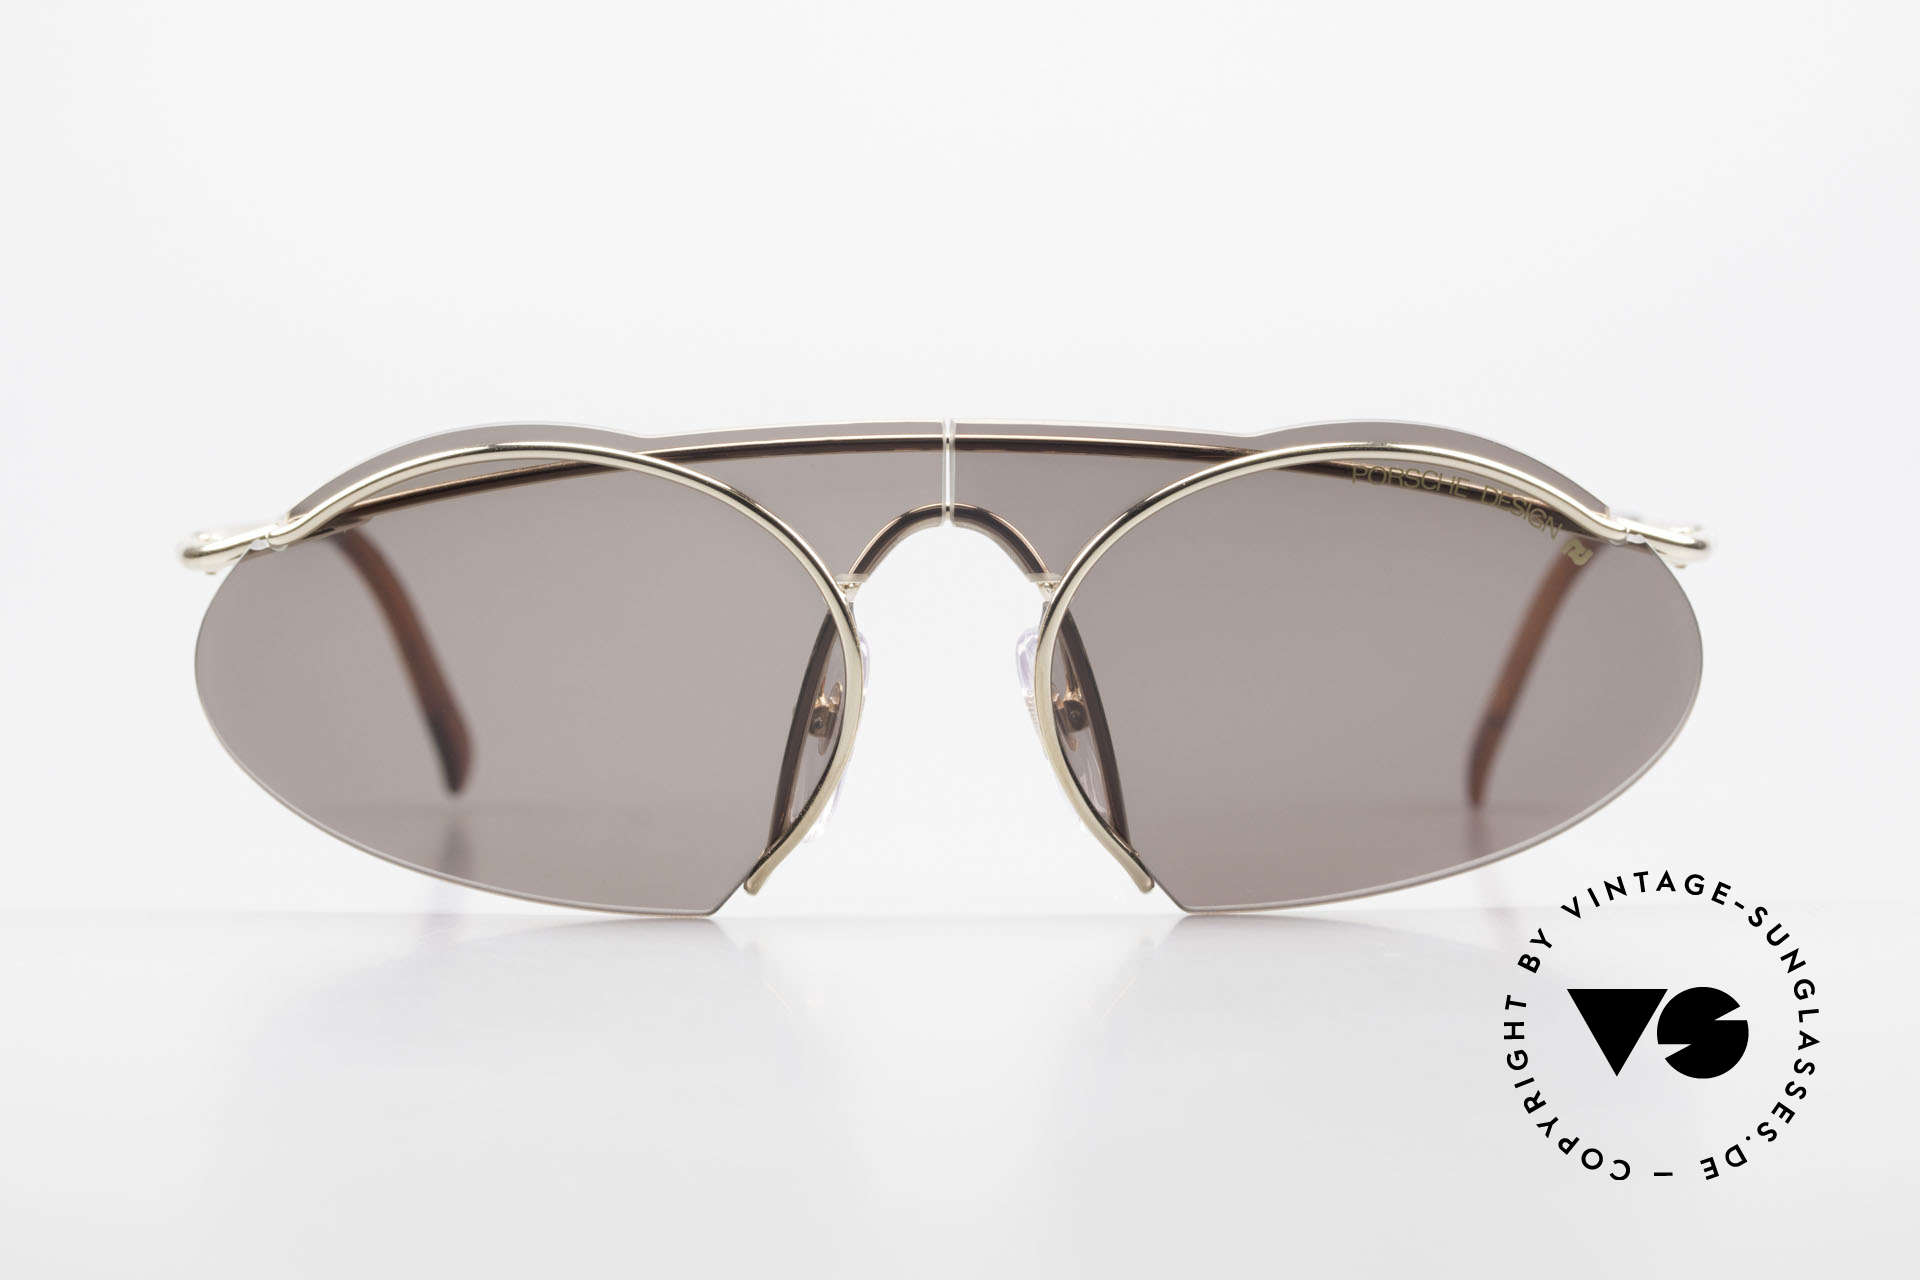 Porsche 5690 2 in 1 Sunglasses Two Styles, high performance, designer sport-shades from the 90's, Made for Men and Women